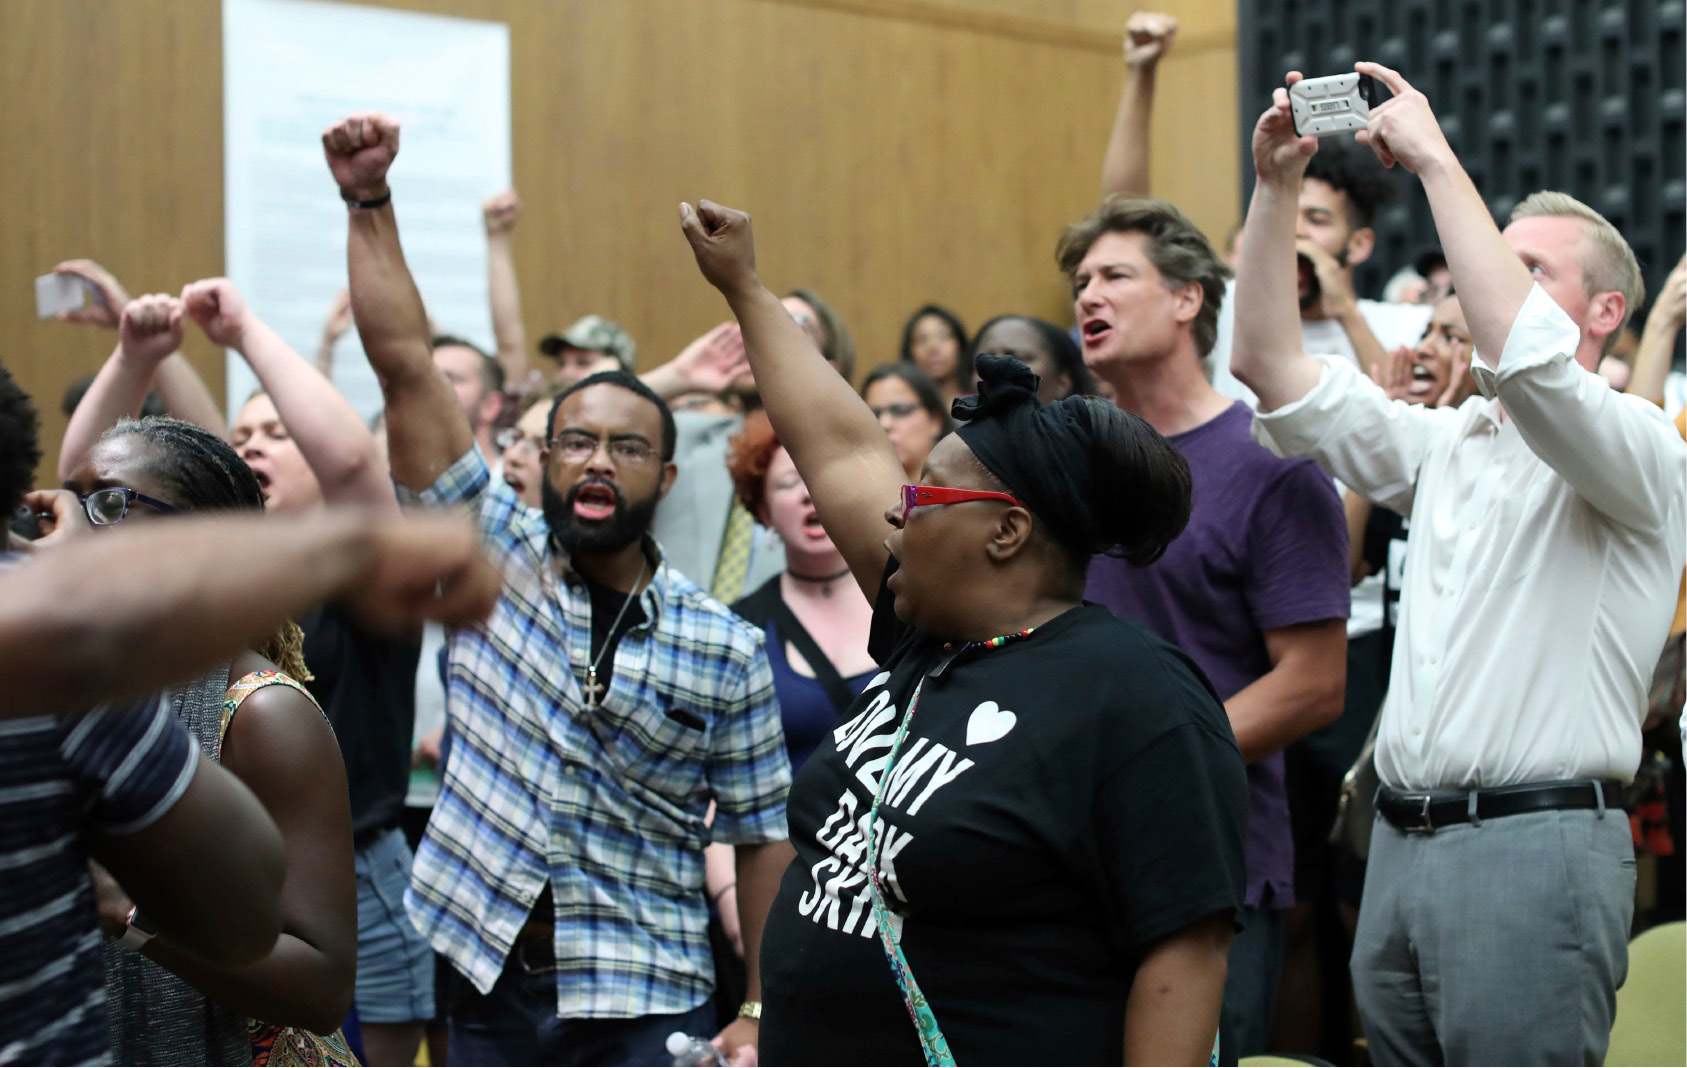 Protesters yell during the Charlottesville City Council meeting Monday, Aug. 21, 2017, in Charlottesville, Va. Anger boiled over at the first Charlottesville City Council meeting since a white nationalist rally in the city descended into violent chaos, with some residents screaming and cursing at councilors Monday night and calling for their resignations. (Andrew Shurtleff/The Daily Progress via AP)